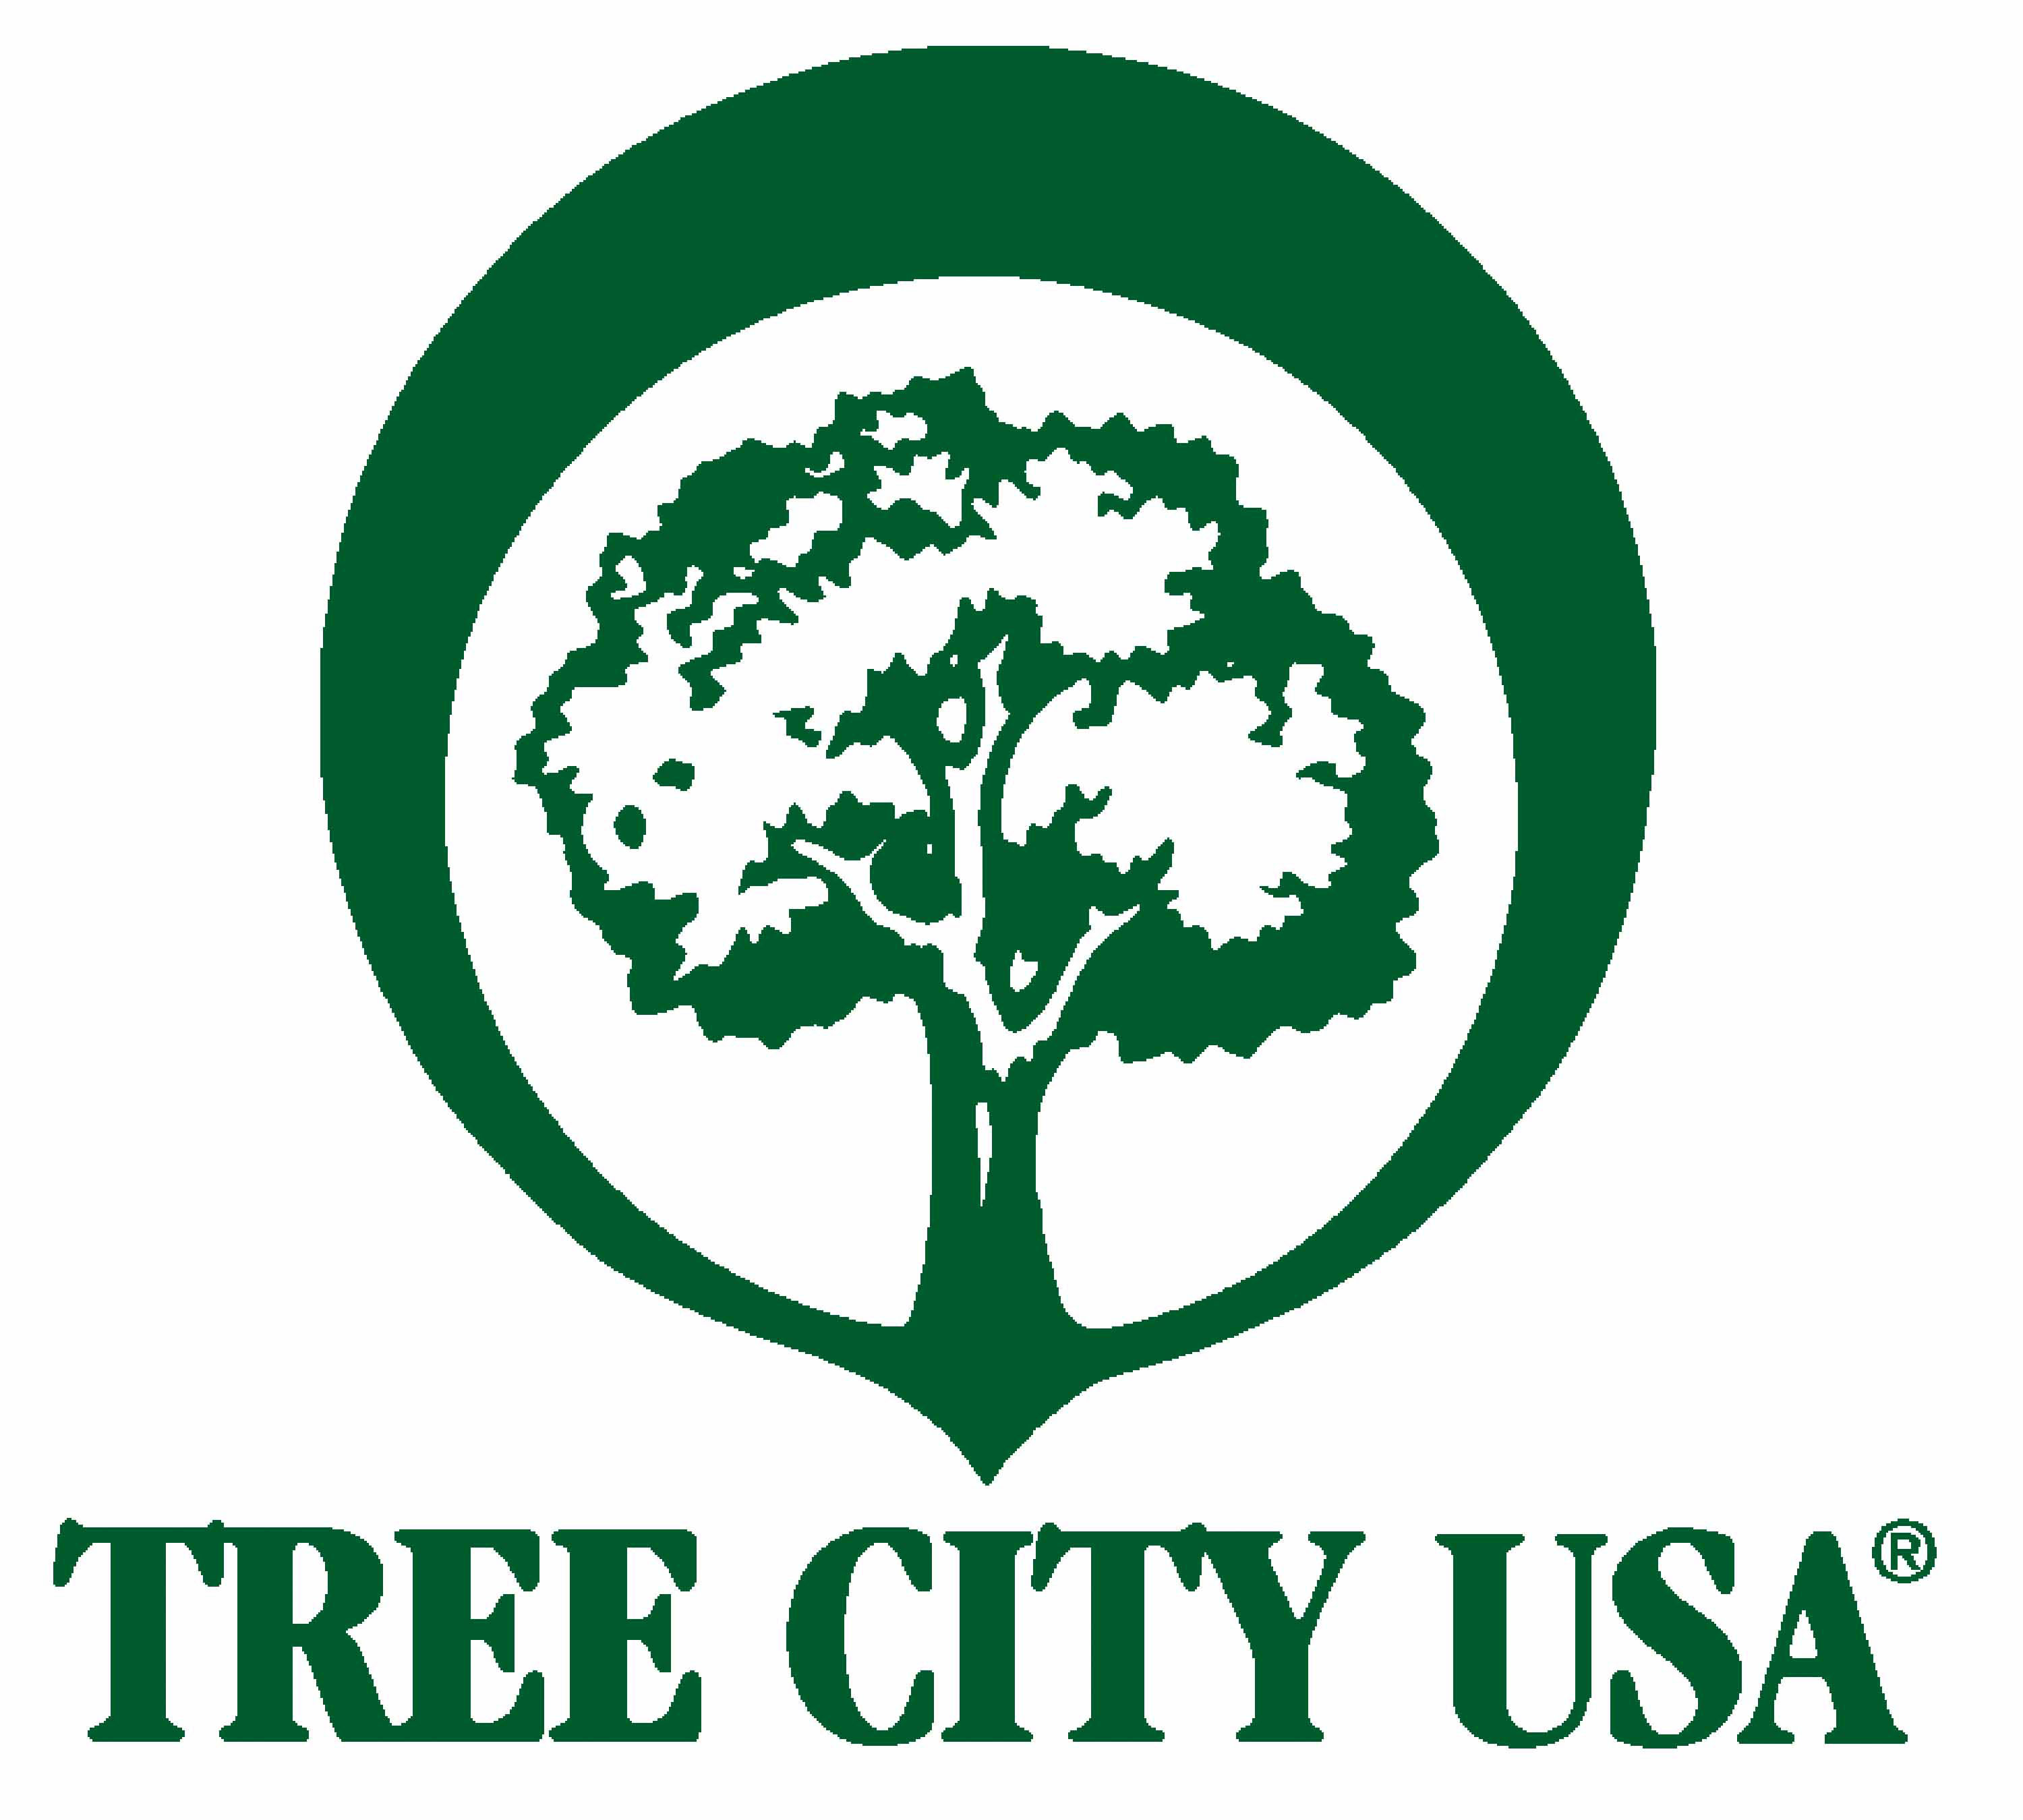 Arbor Day/Tree City USA - City of Princeton